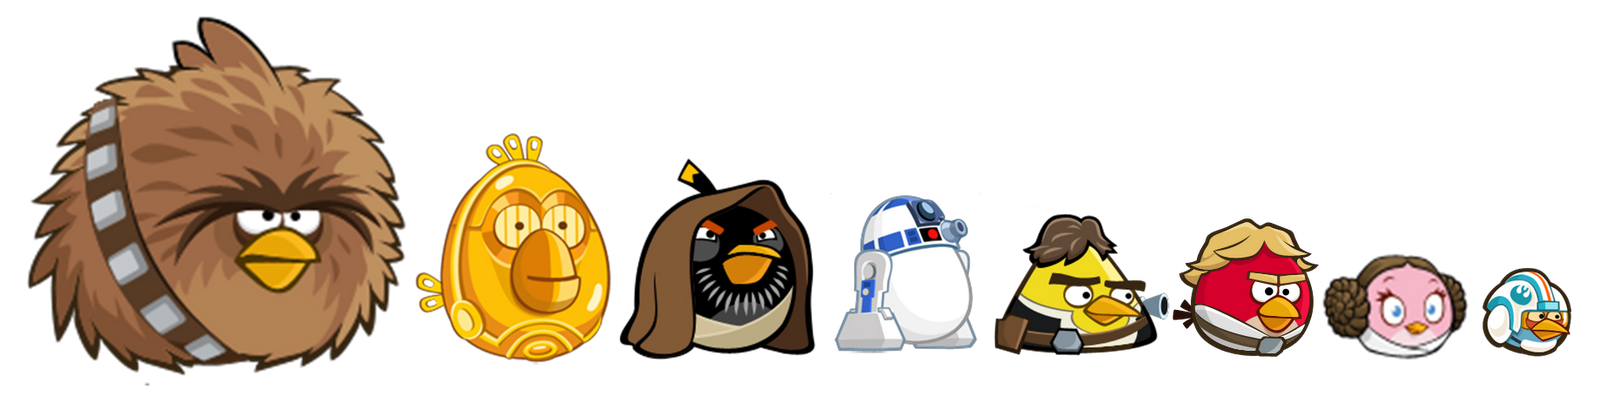 GameDroid: Angry Birds Star Wars - Goods And Bads